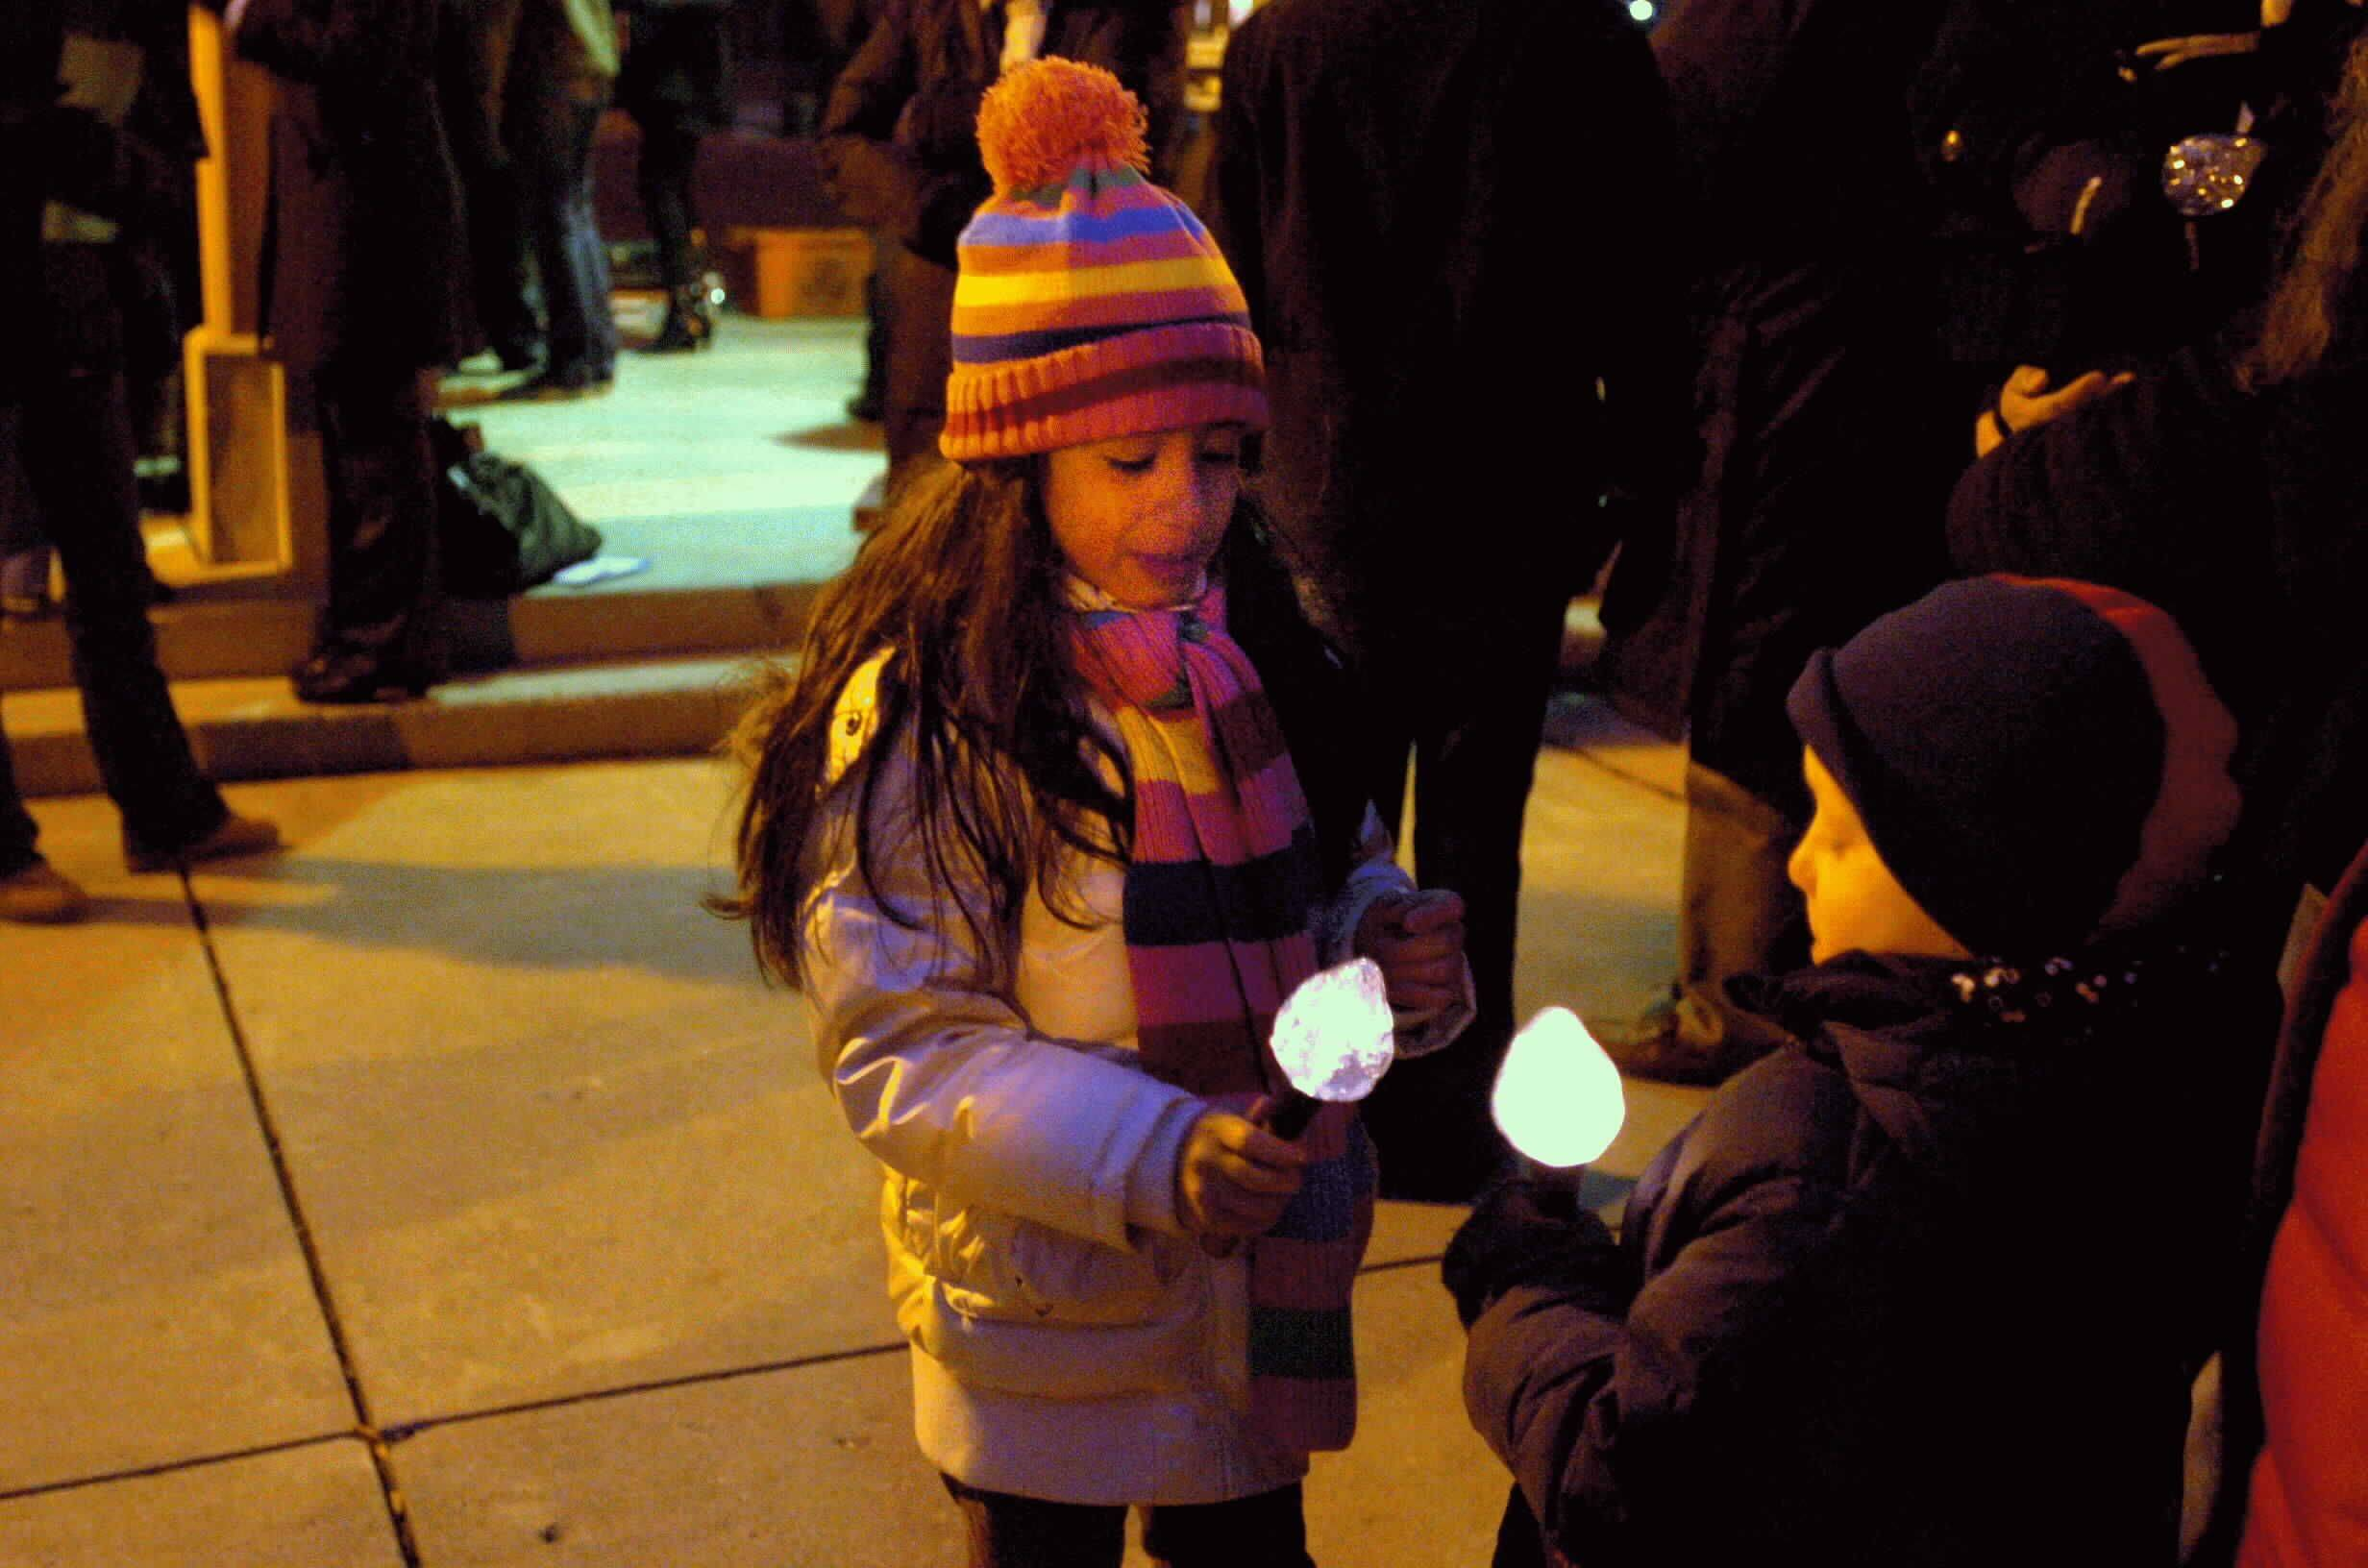 Six-year-old Giulia Ayala of St. Charles and her friend, 5-year-old Joey Jensen from St. Charles play with their flashlight torches that they received at the lighting of the holiday lights in Lincoln Park in St. Charles Friday night.